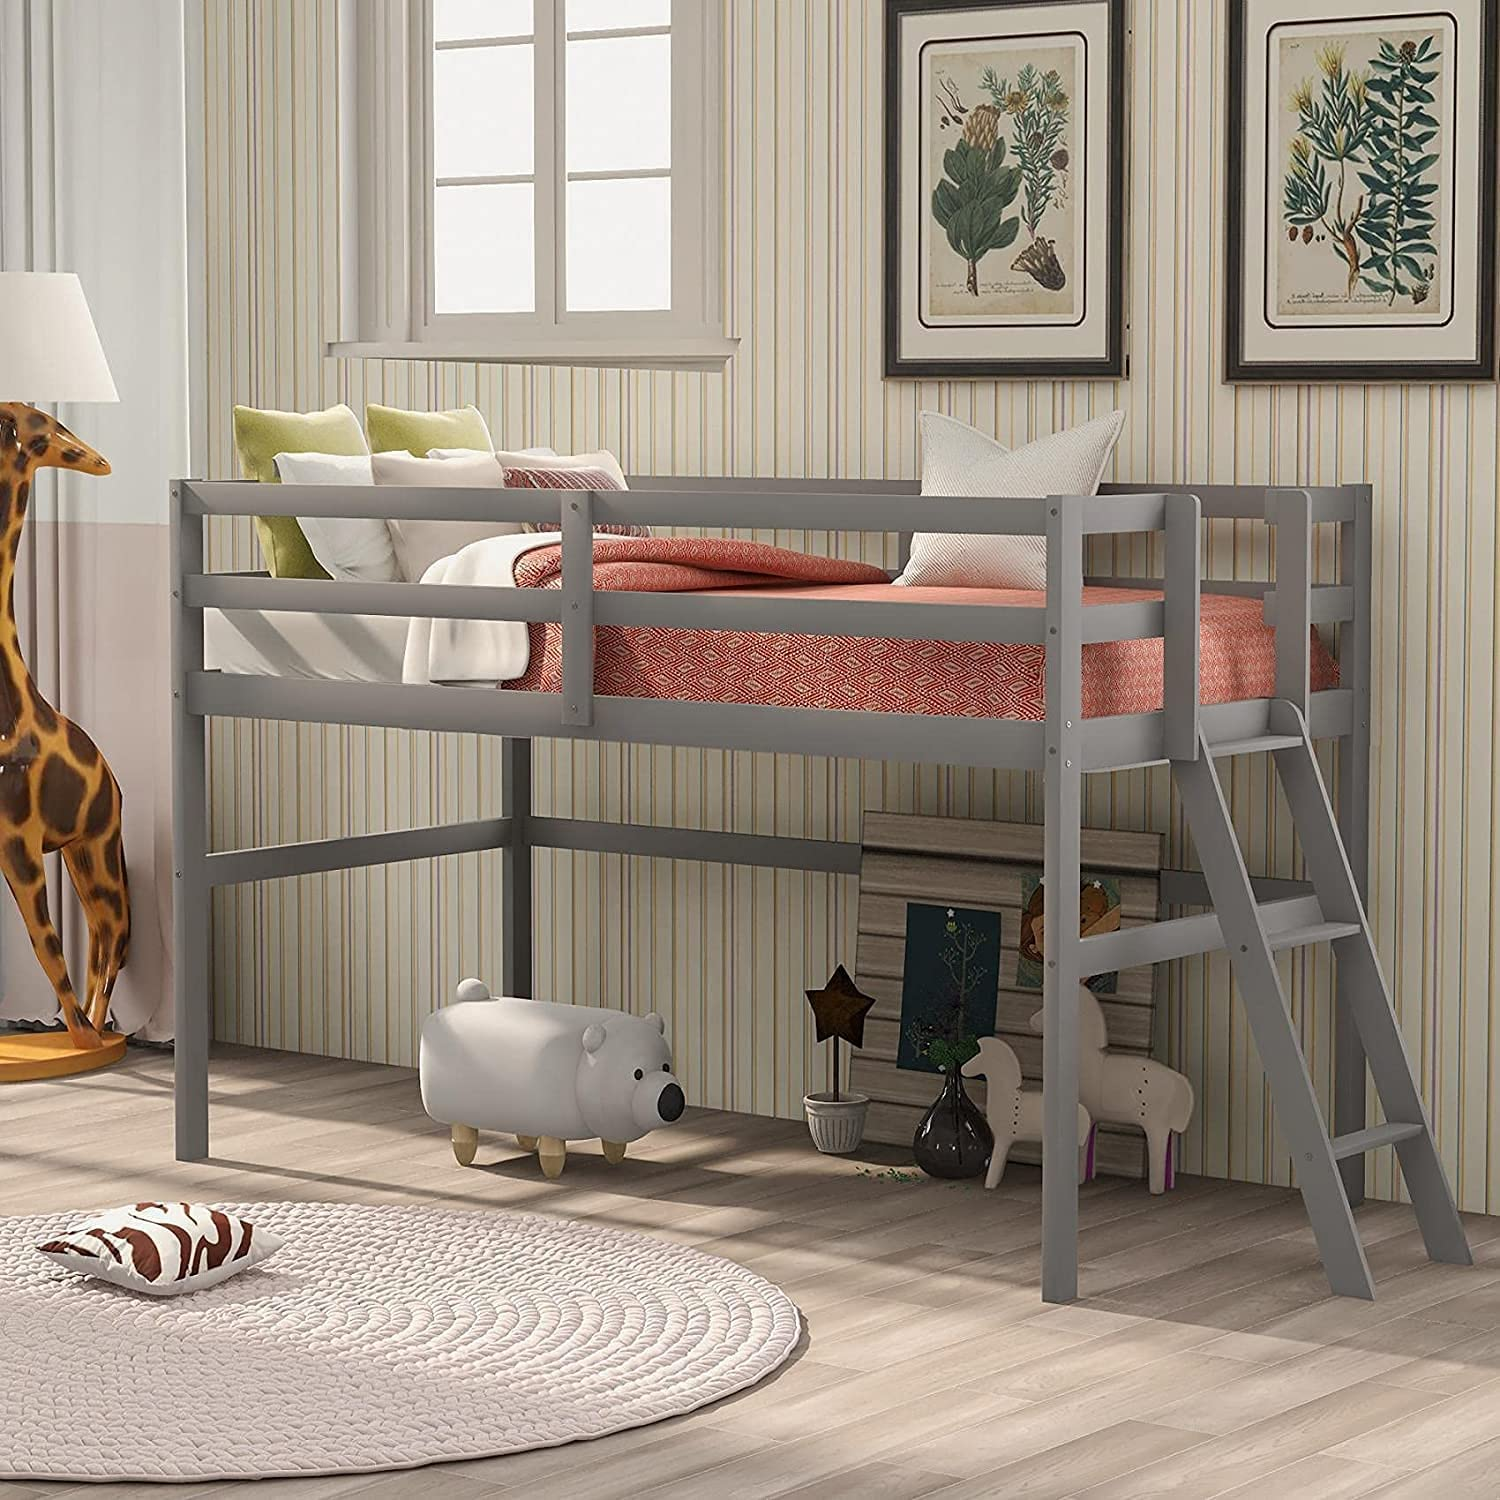 Ecueze Wooden Twin Sizes Low Loft Ladder Gray Max 78% OFF Strong Bed Ranking TOP1 a with